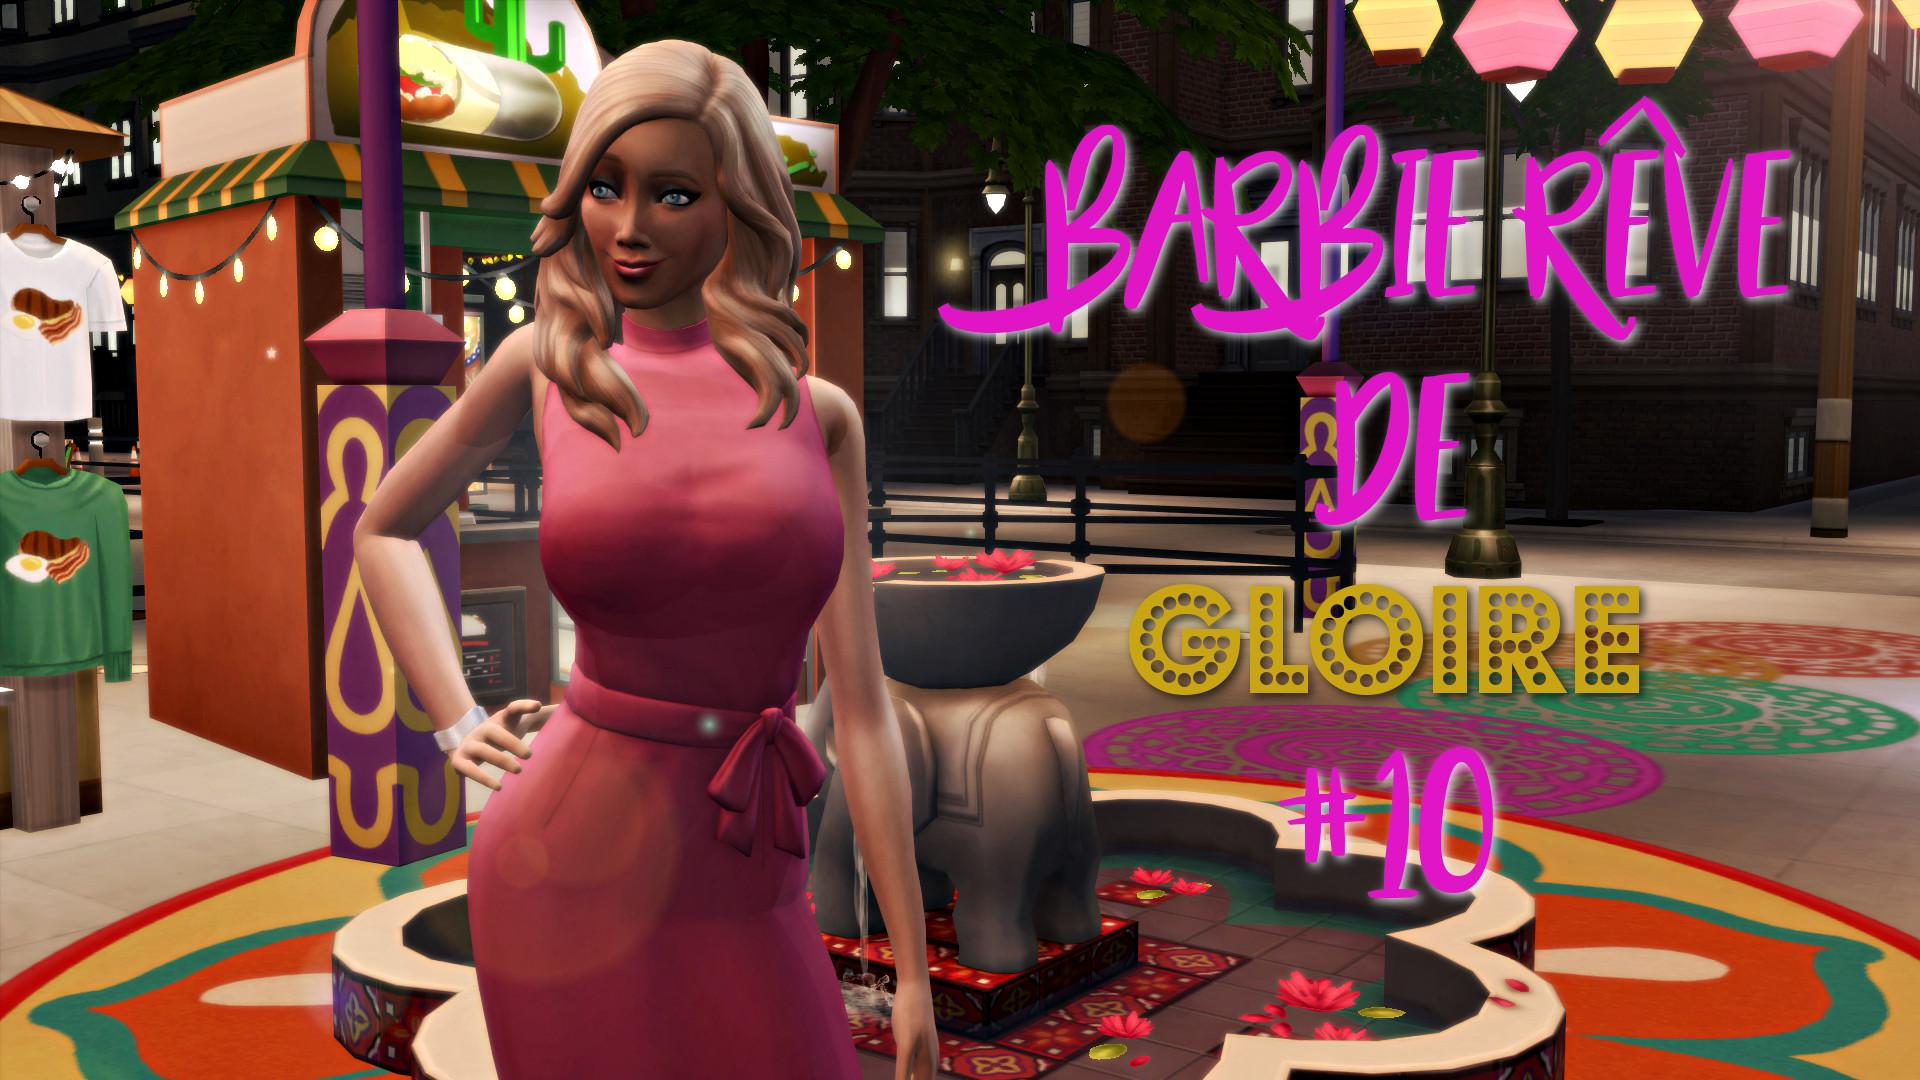 [LET'S PLAY] Barbie rêve de gloire #10